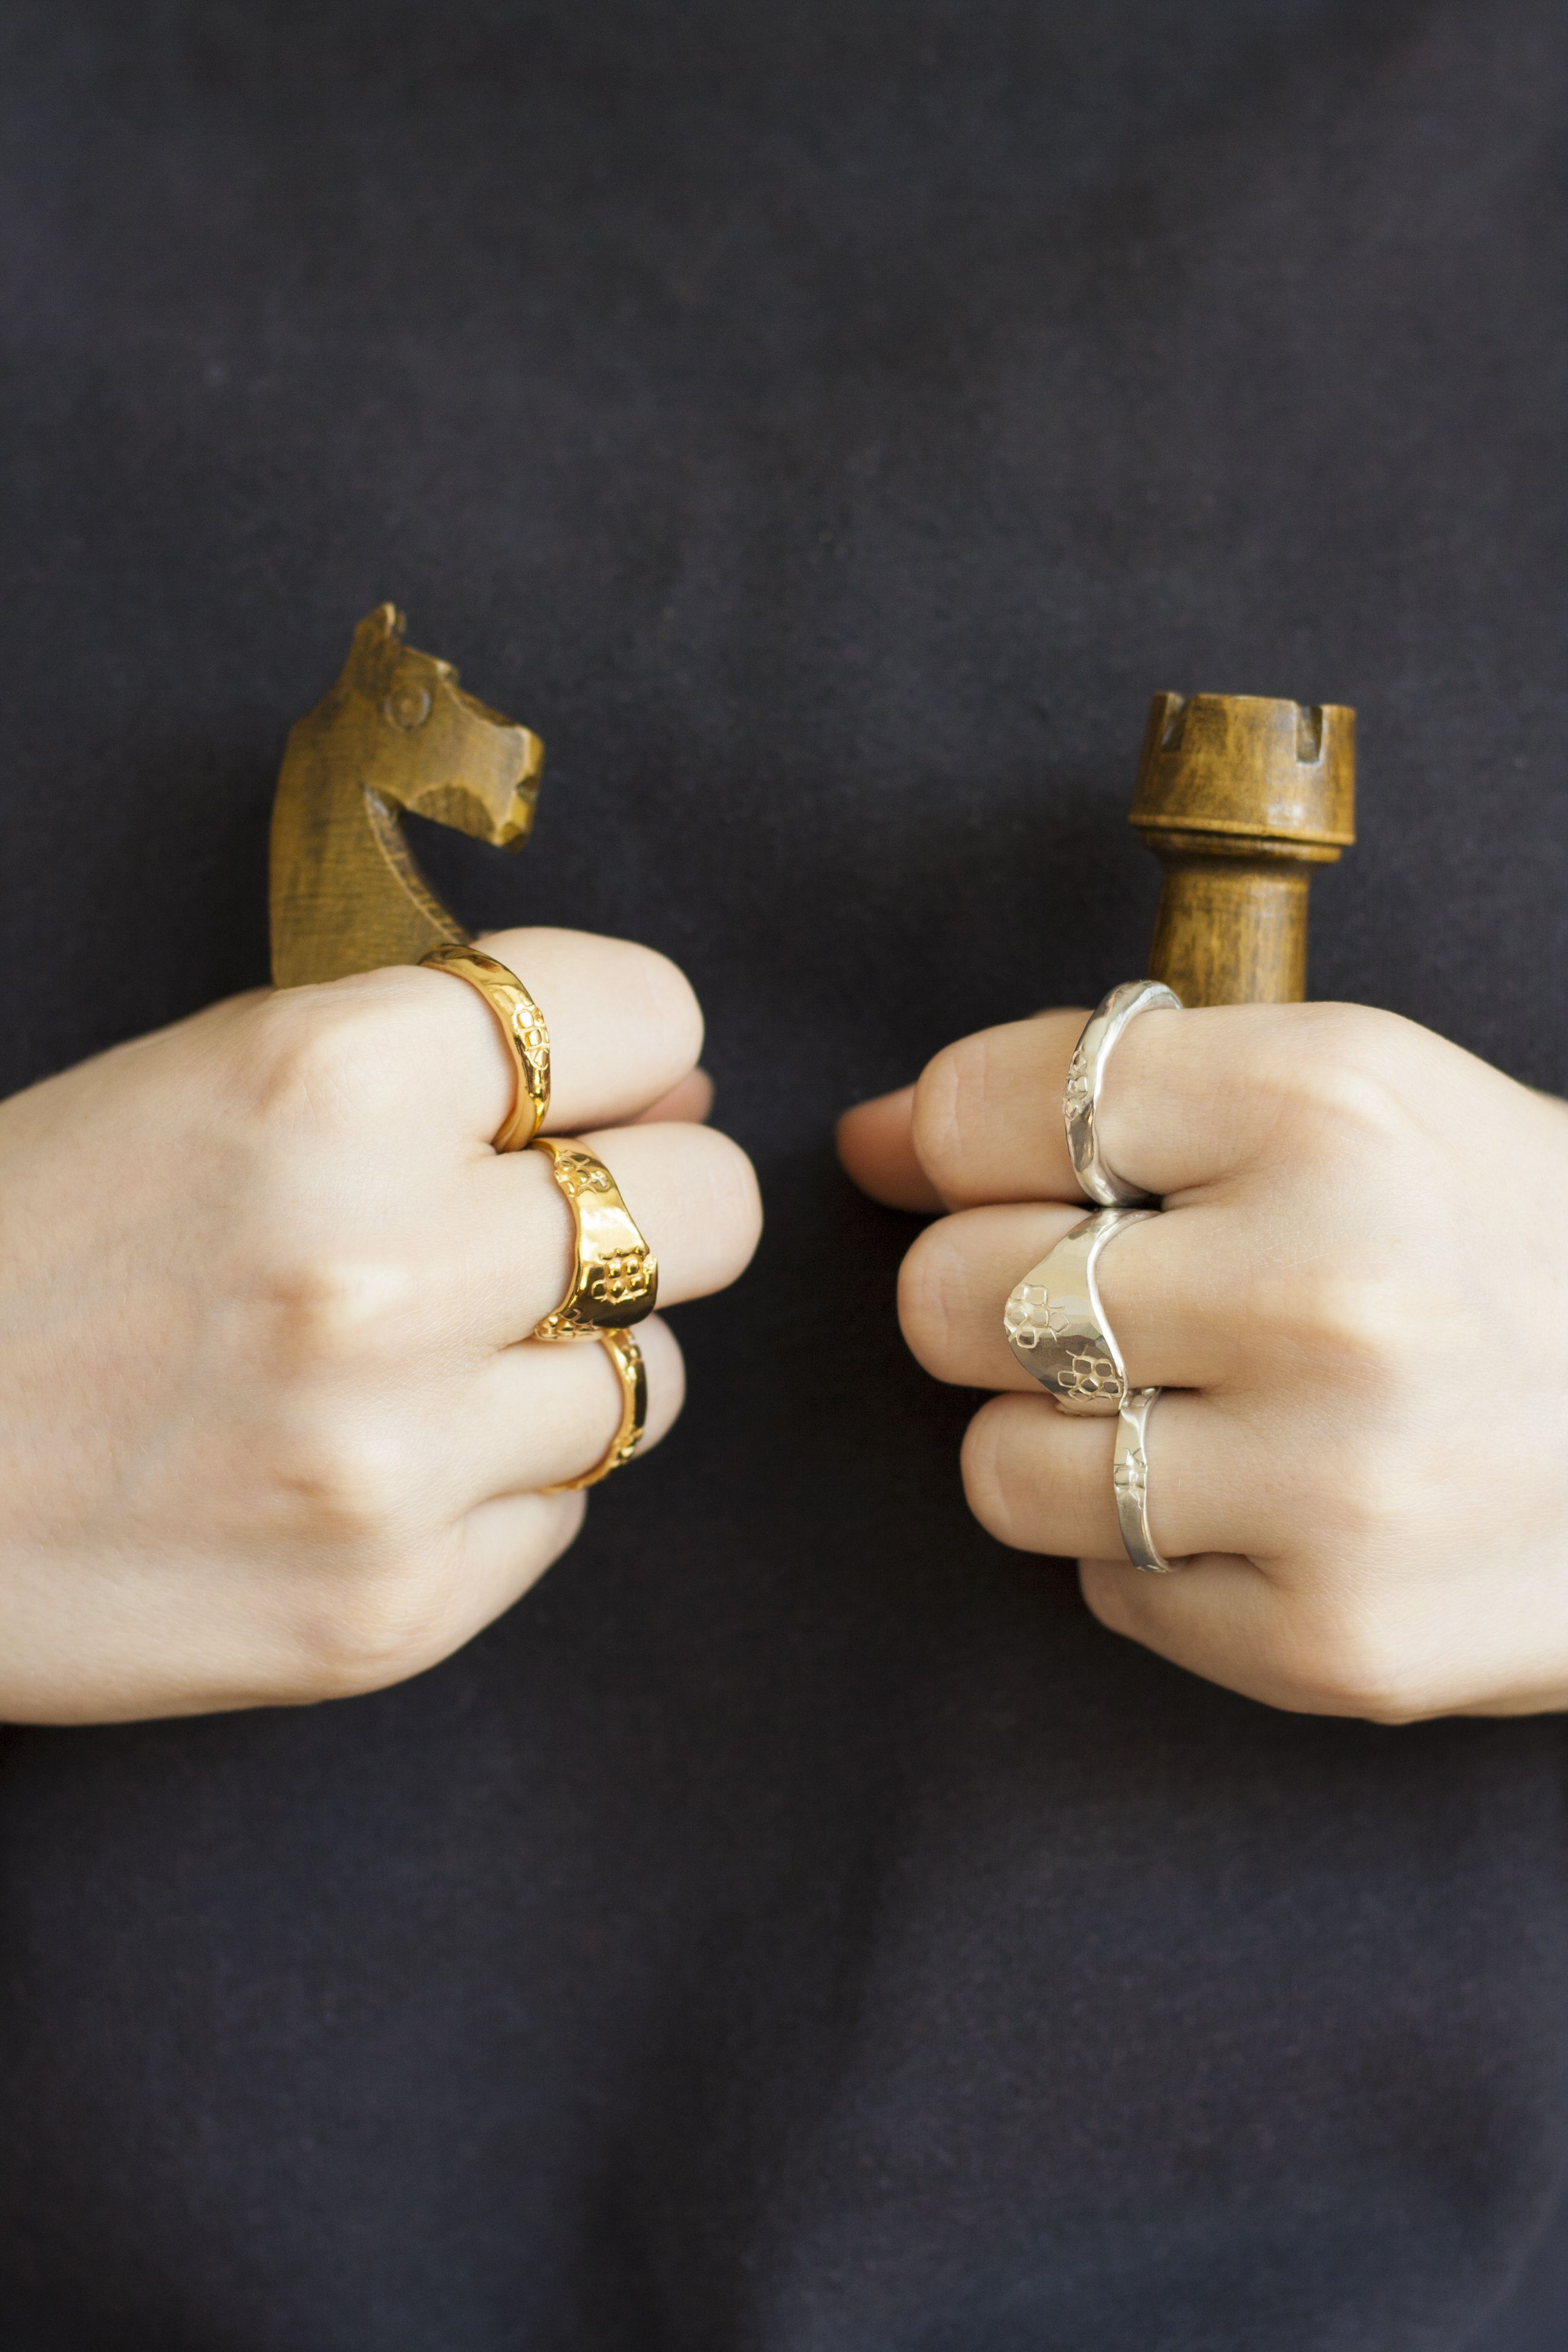 Chunky Rings From Ovals And Squares Collection By A London Based Jewellery Designer Margo Orlovik Silver And 24 Ct Gold Ve Jewelry Design Chunky Rings Jewelry